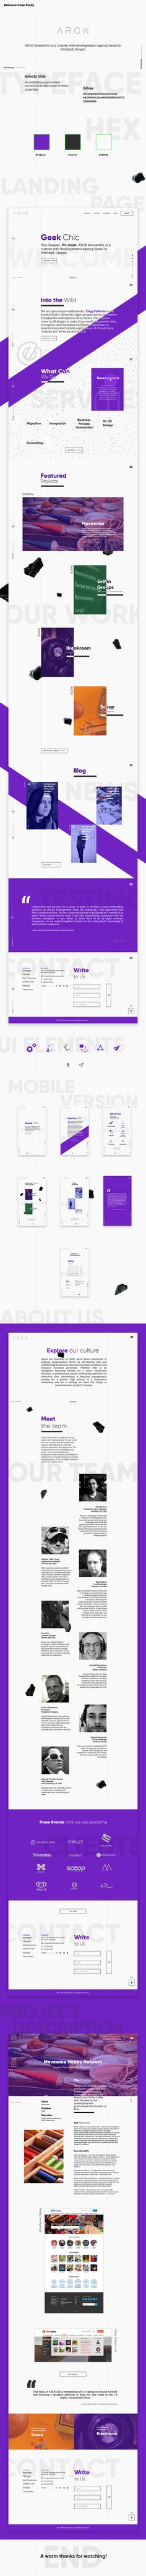 "Check out my @Behance project: ""ARCK - Web Design, Final Pitch"" https://www.behance.net/gallery/51253455/ARCK-Web-Design-Final-Pitch"